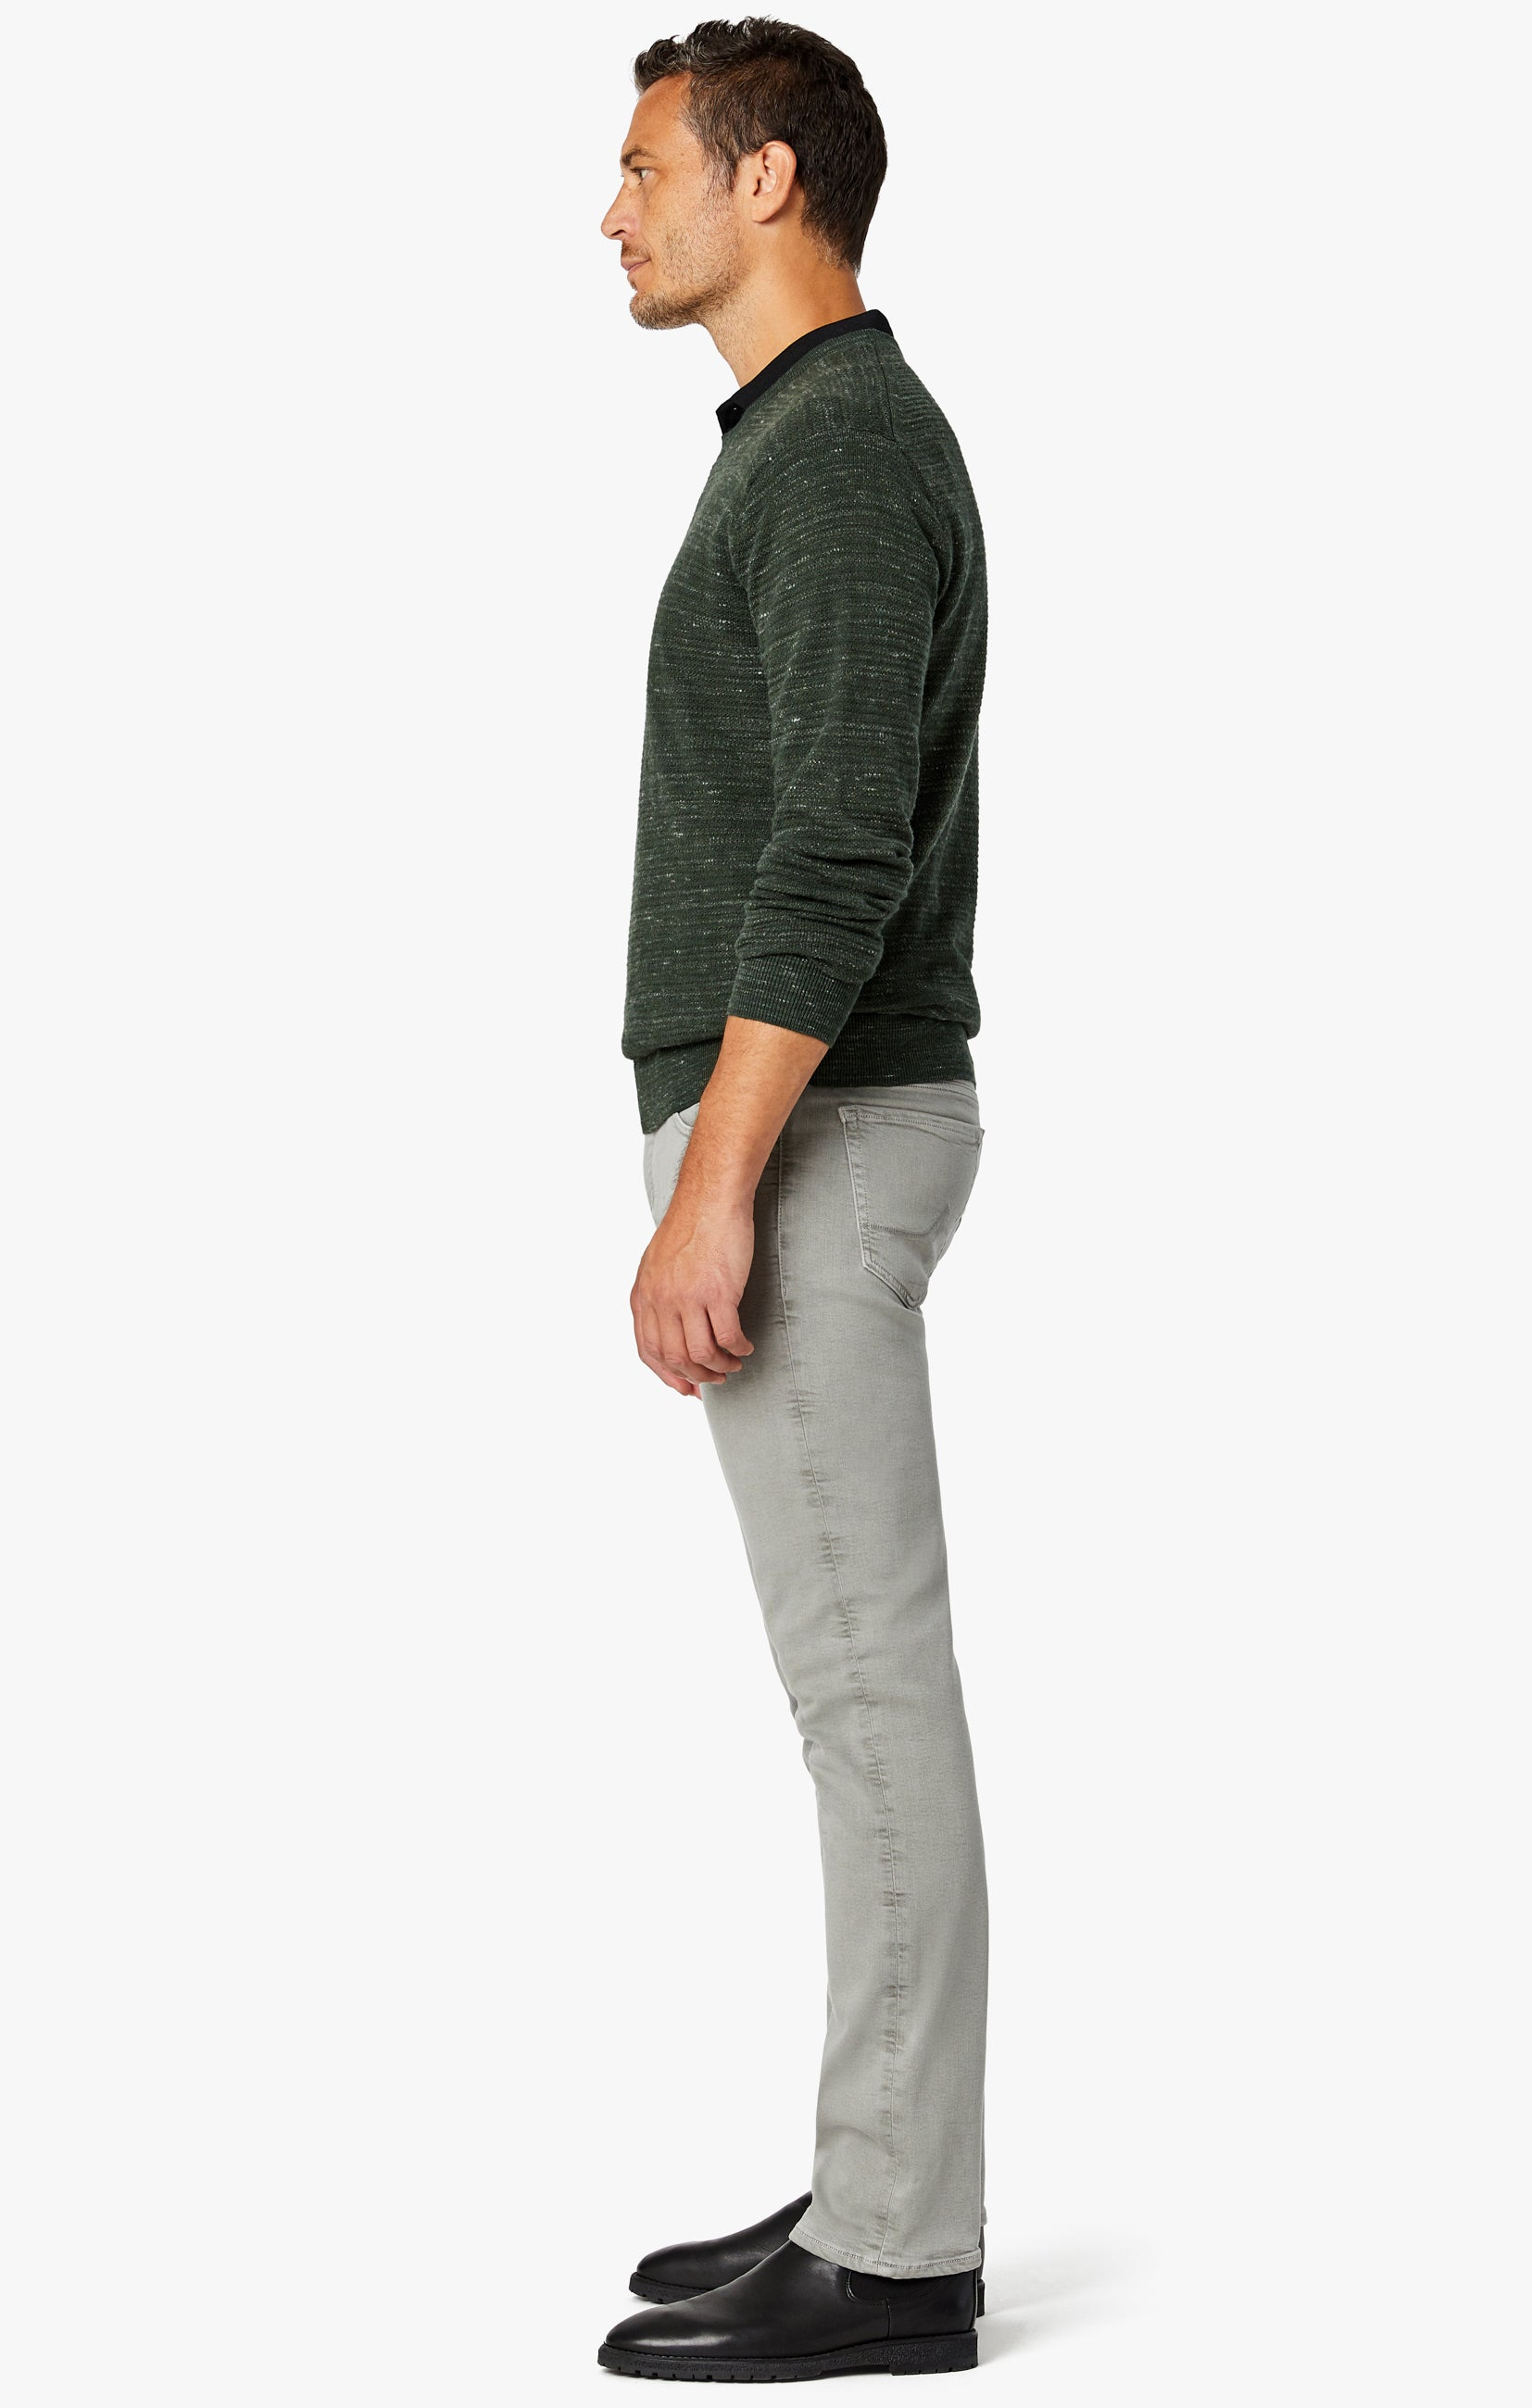 Charisma Classic Fit Jeans in Light Grey Comfort Image 5